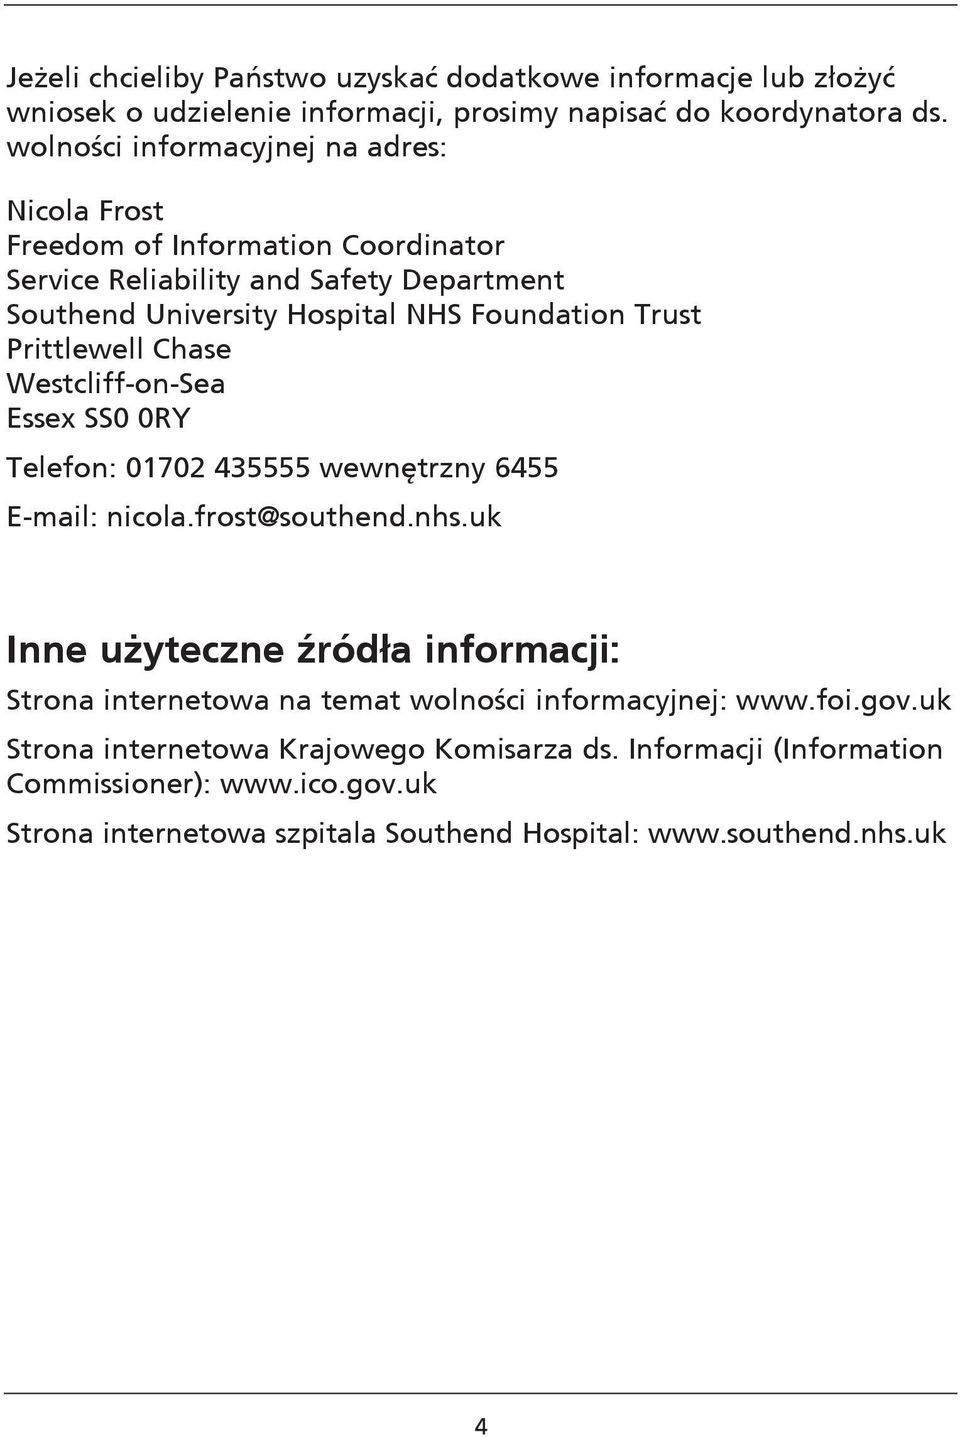 Prittlewell Chase Westcliff-on-Sea Essex SS0 0RY Telefon: 01702 435555 wewnętrzny 6455 E-mail: nicola.frost@southend.nhs.